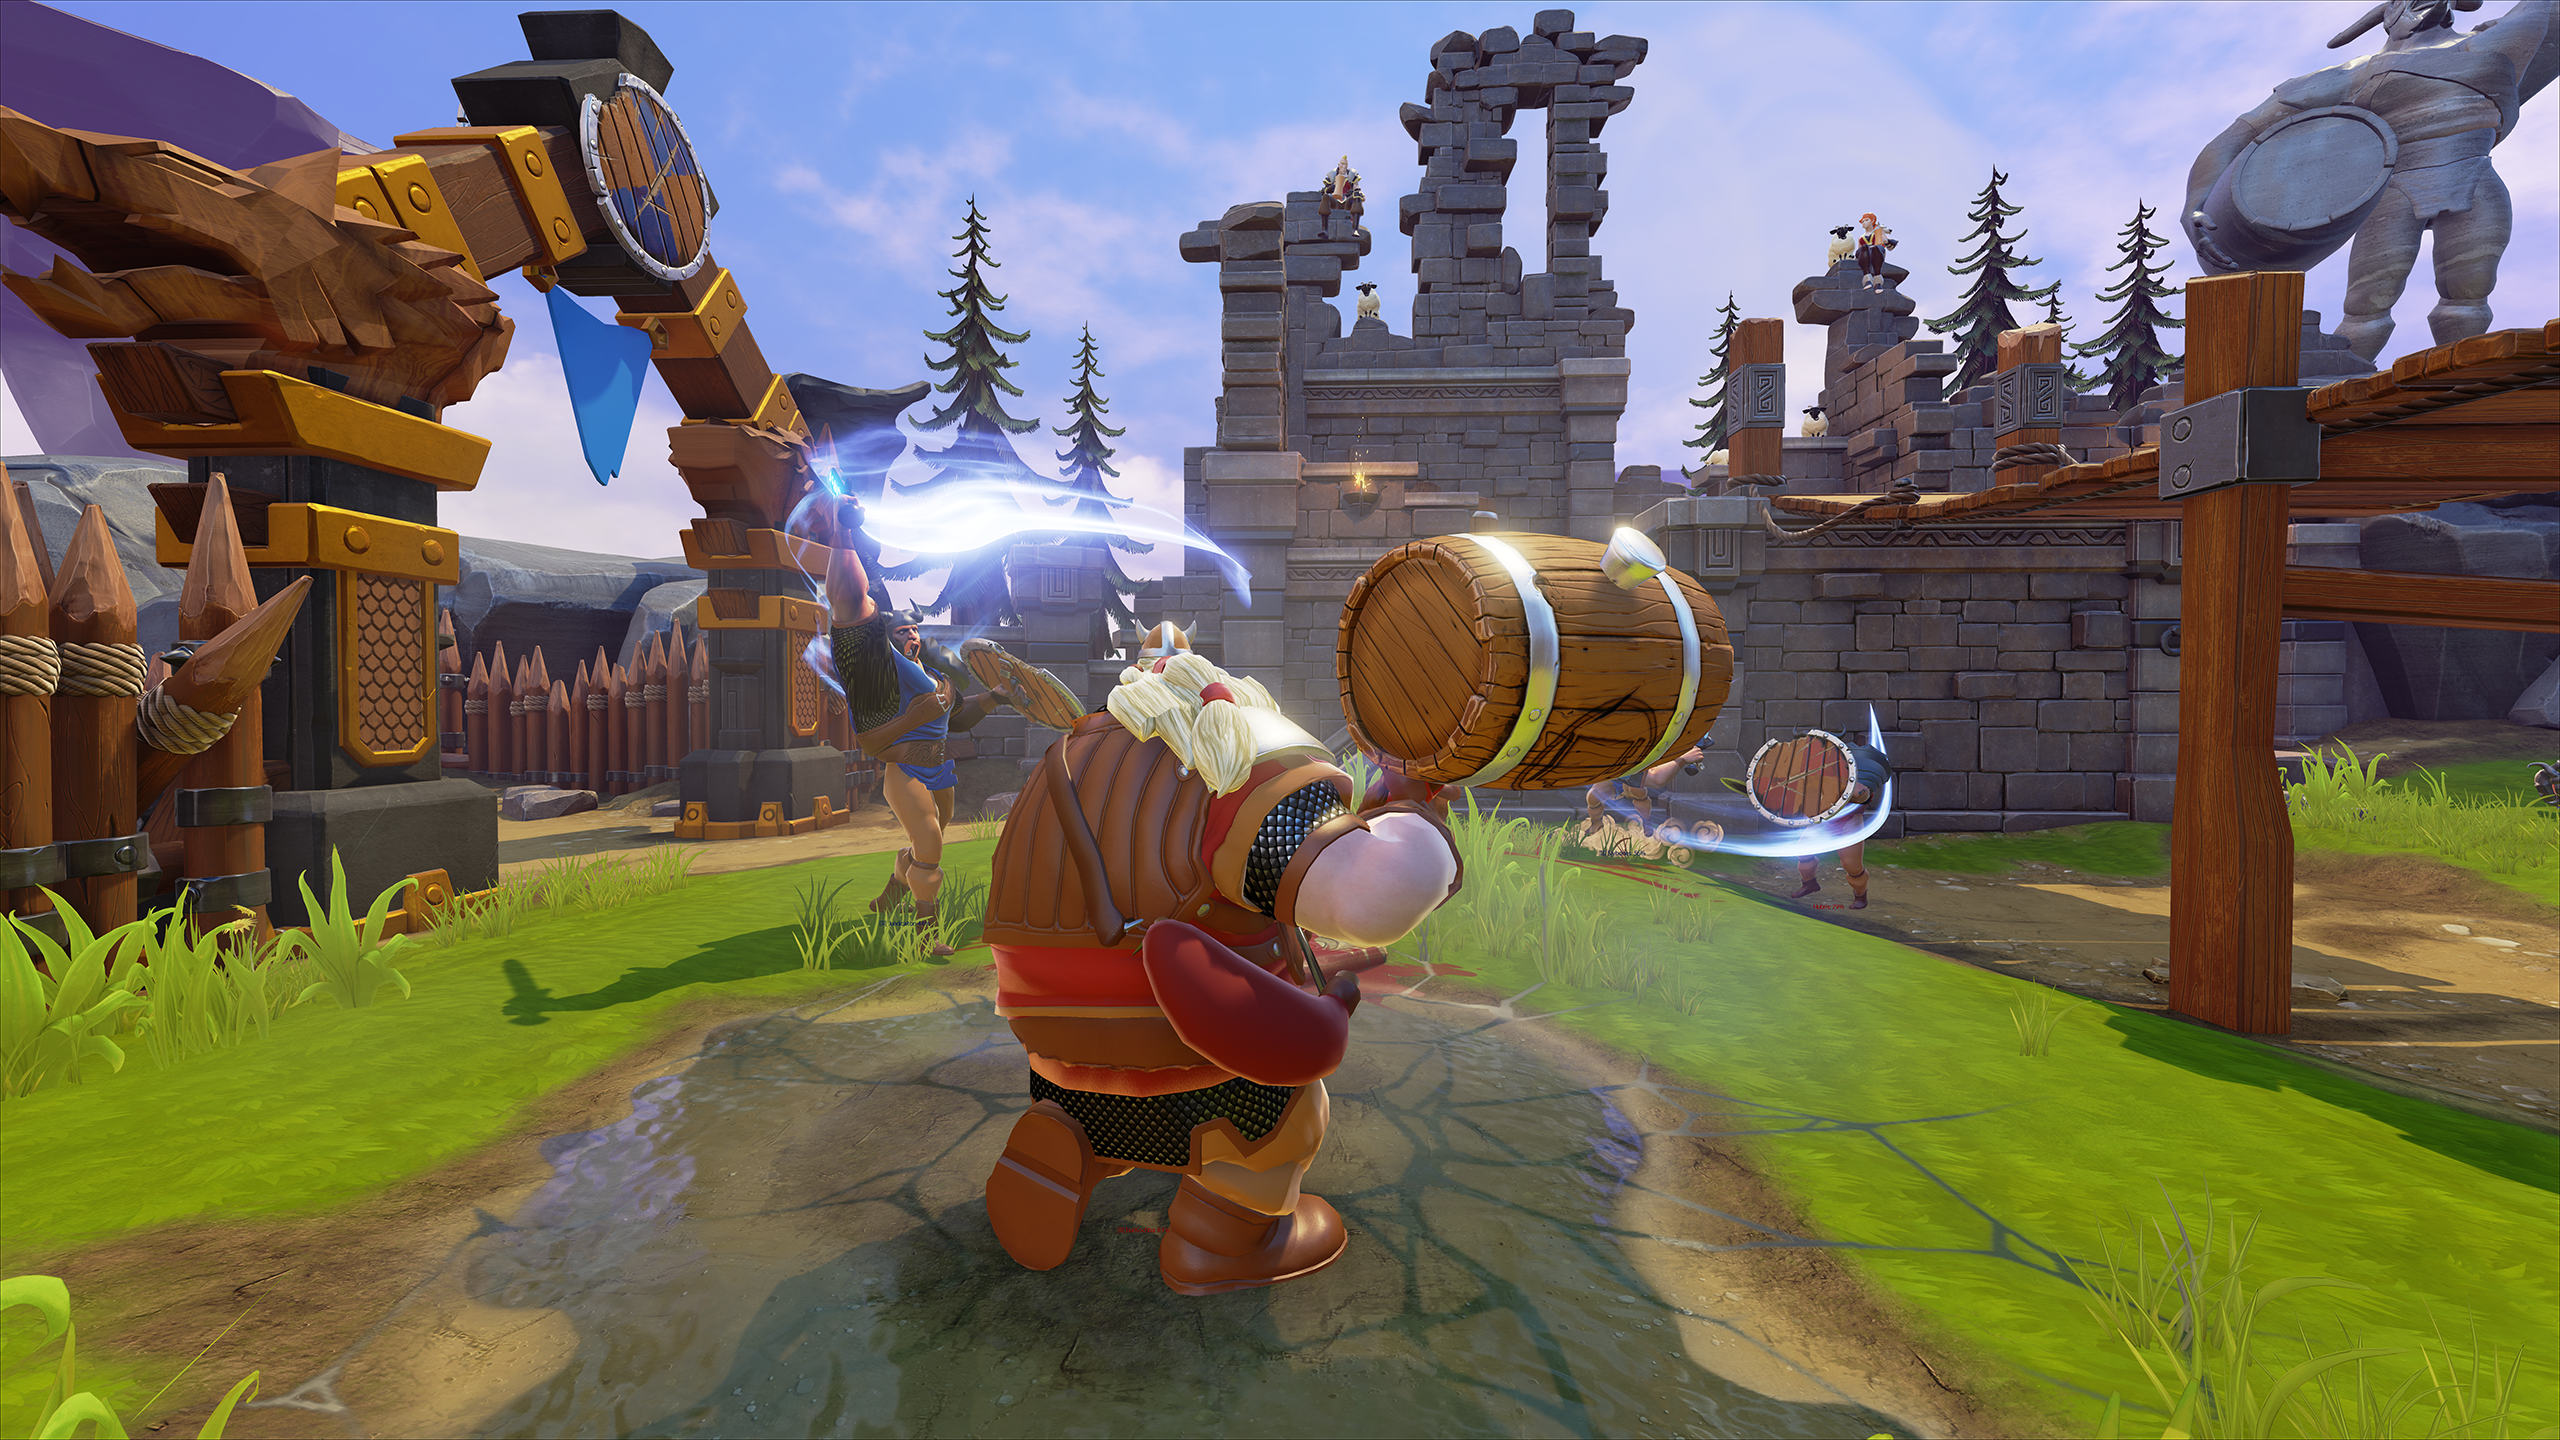 Bierzerkers - Unreal Engine 4 Multiplayer Combat Set in the